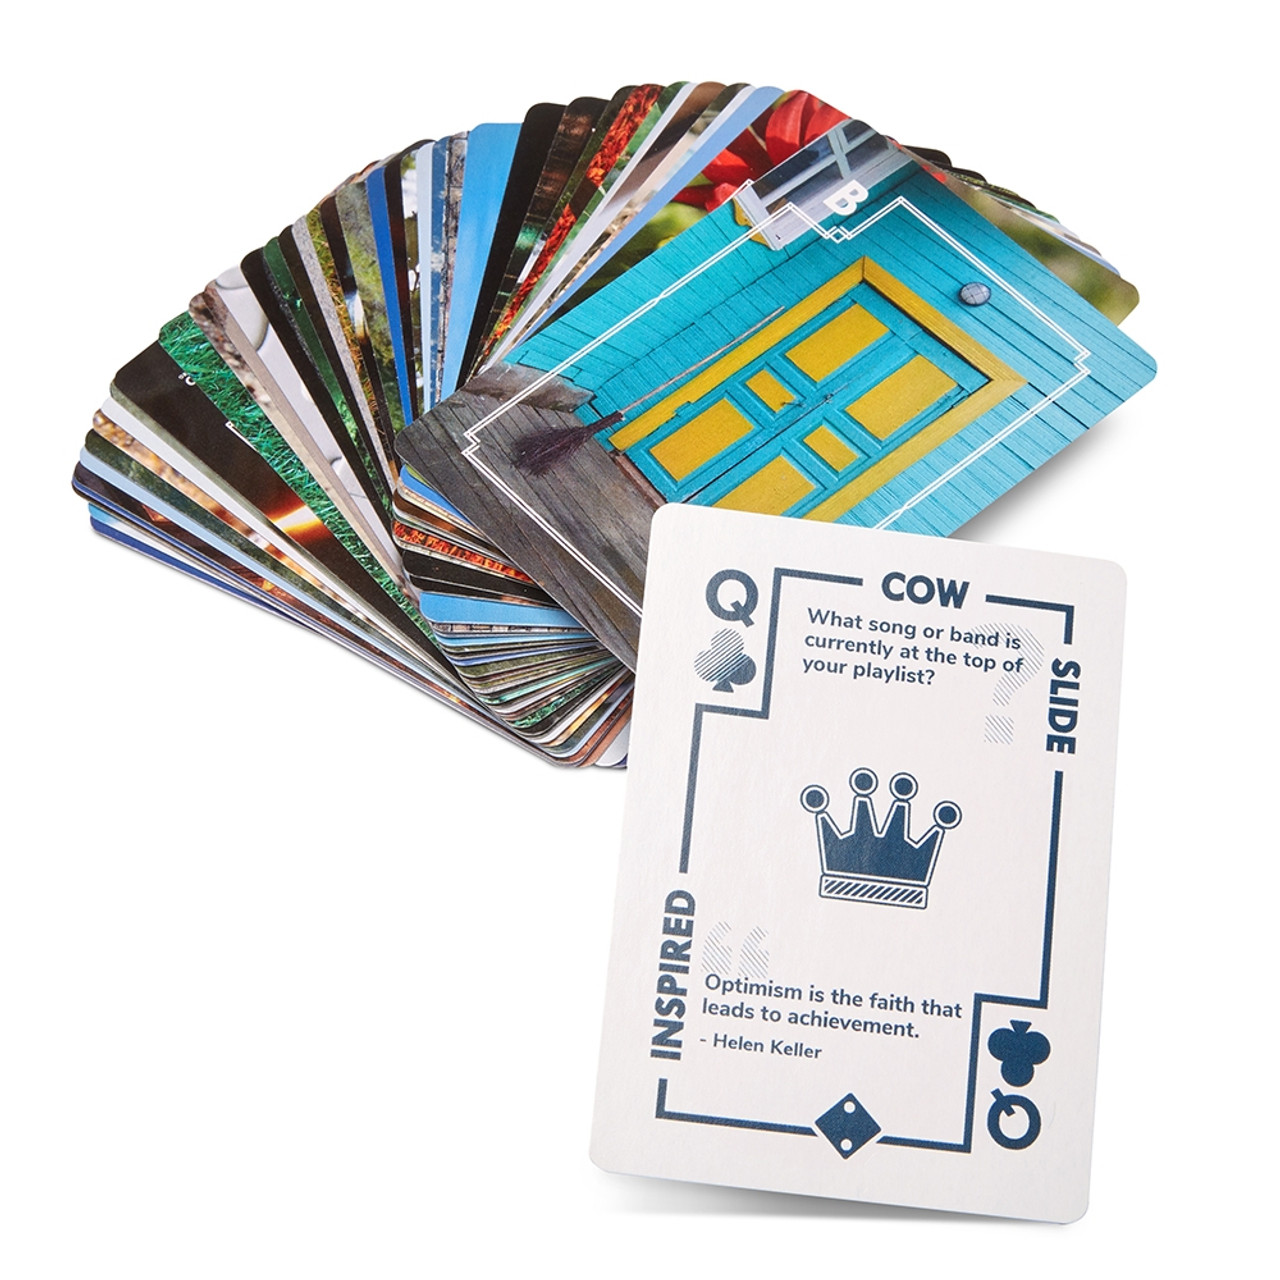 ULEAD Cards; cards